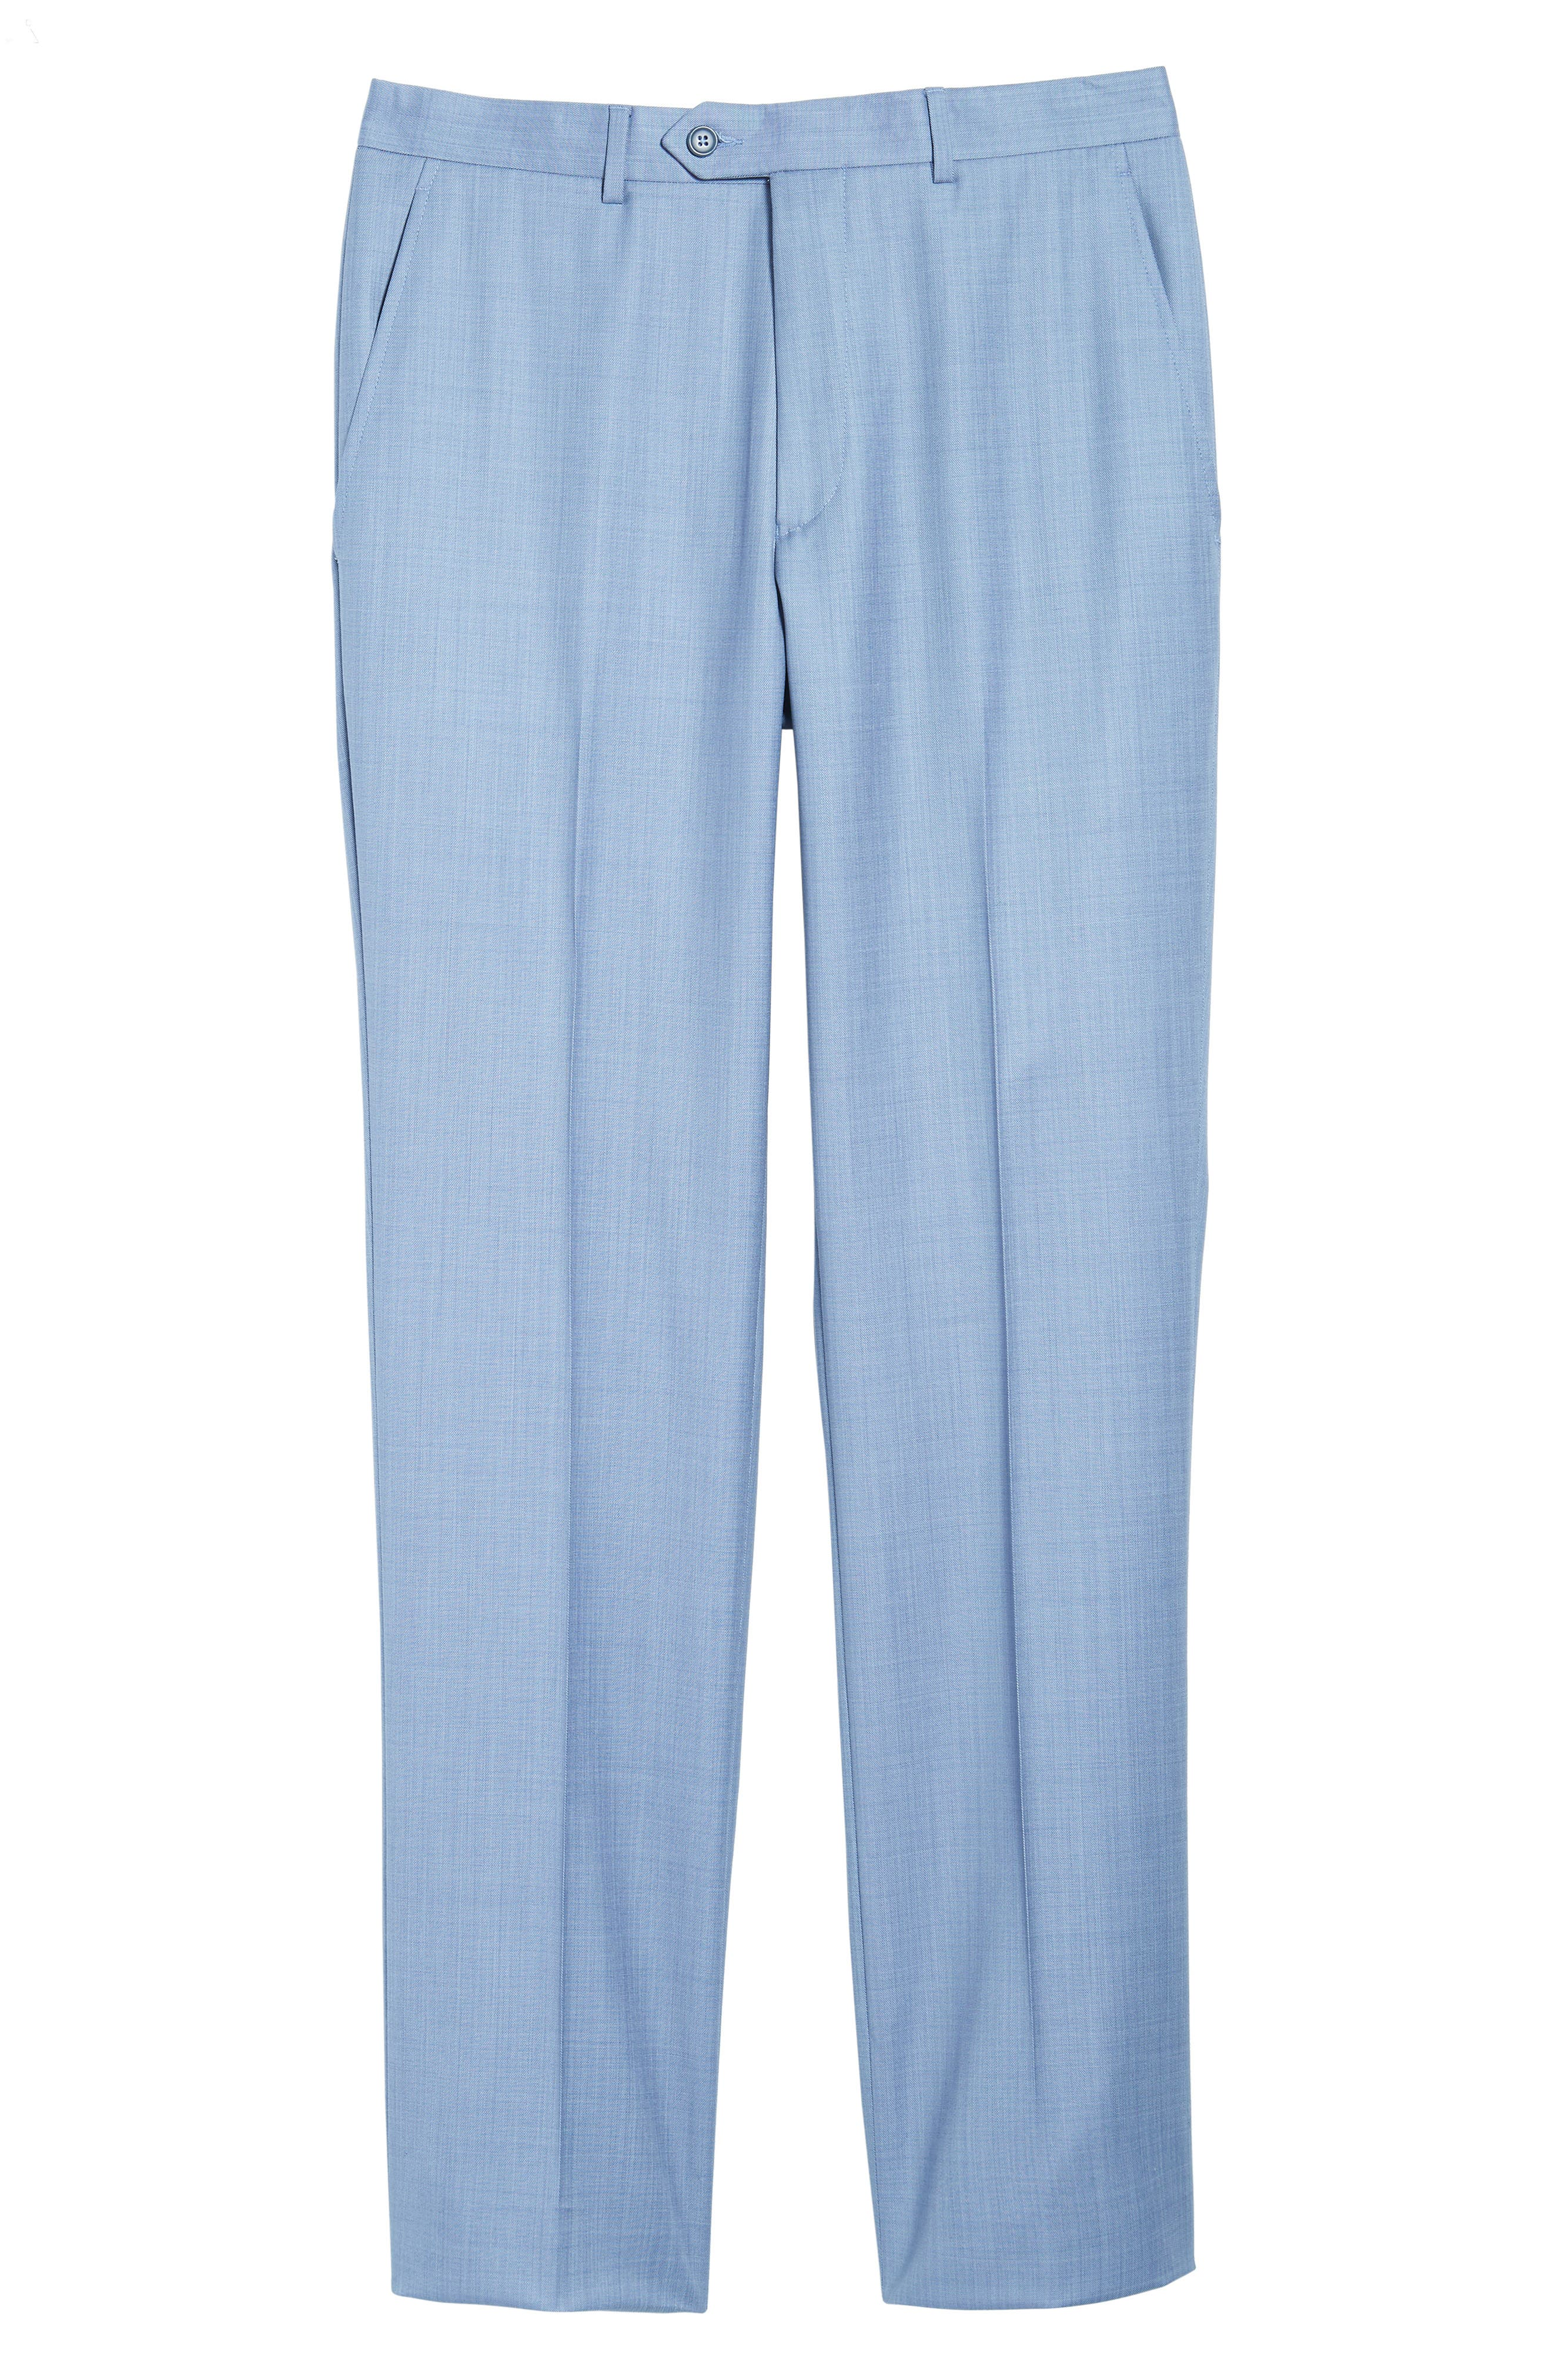 Flat Front Solid Wool Trousers,                             Alternate thumbnail 6, color,                             422